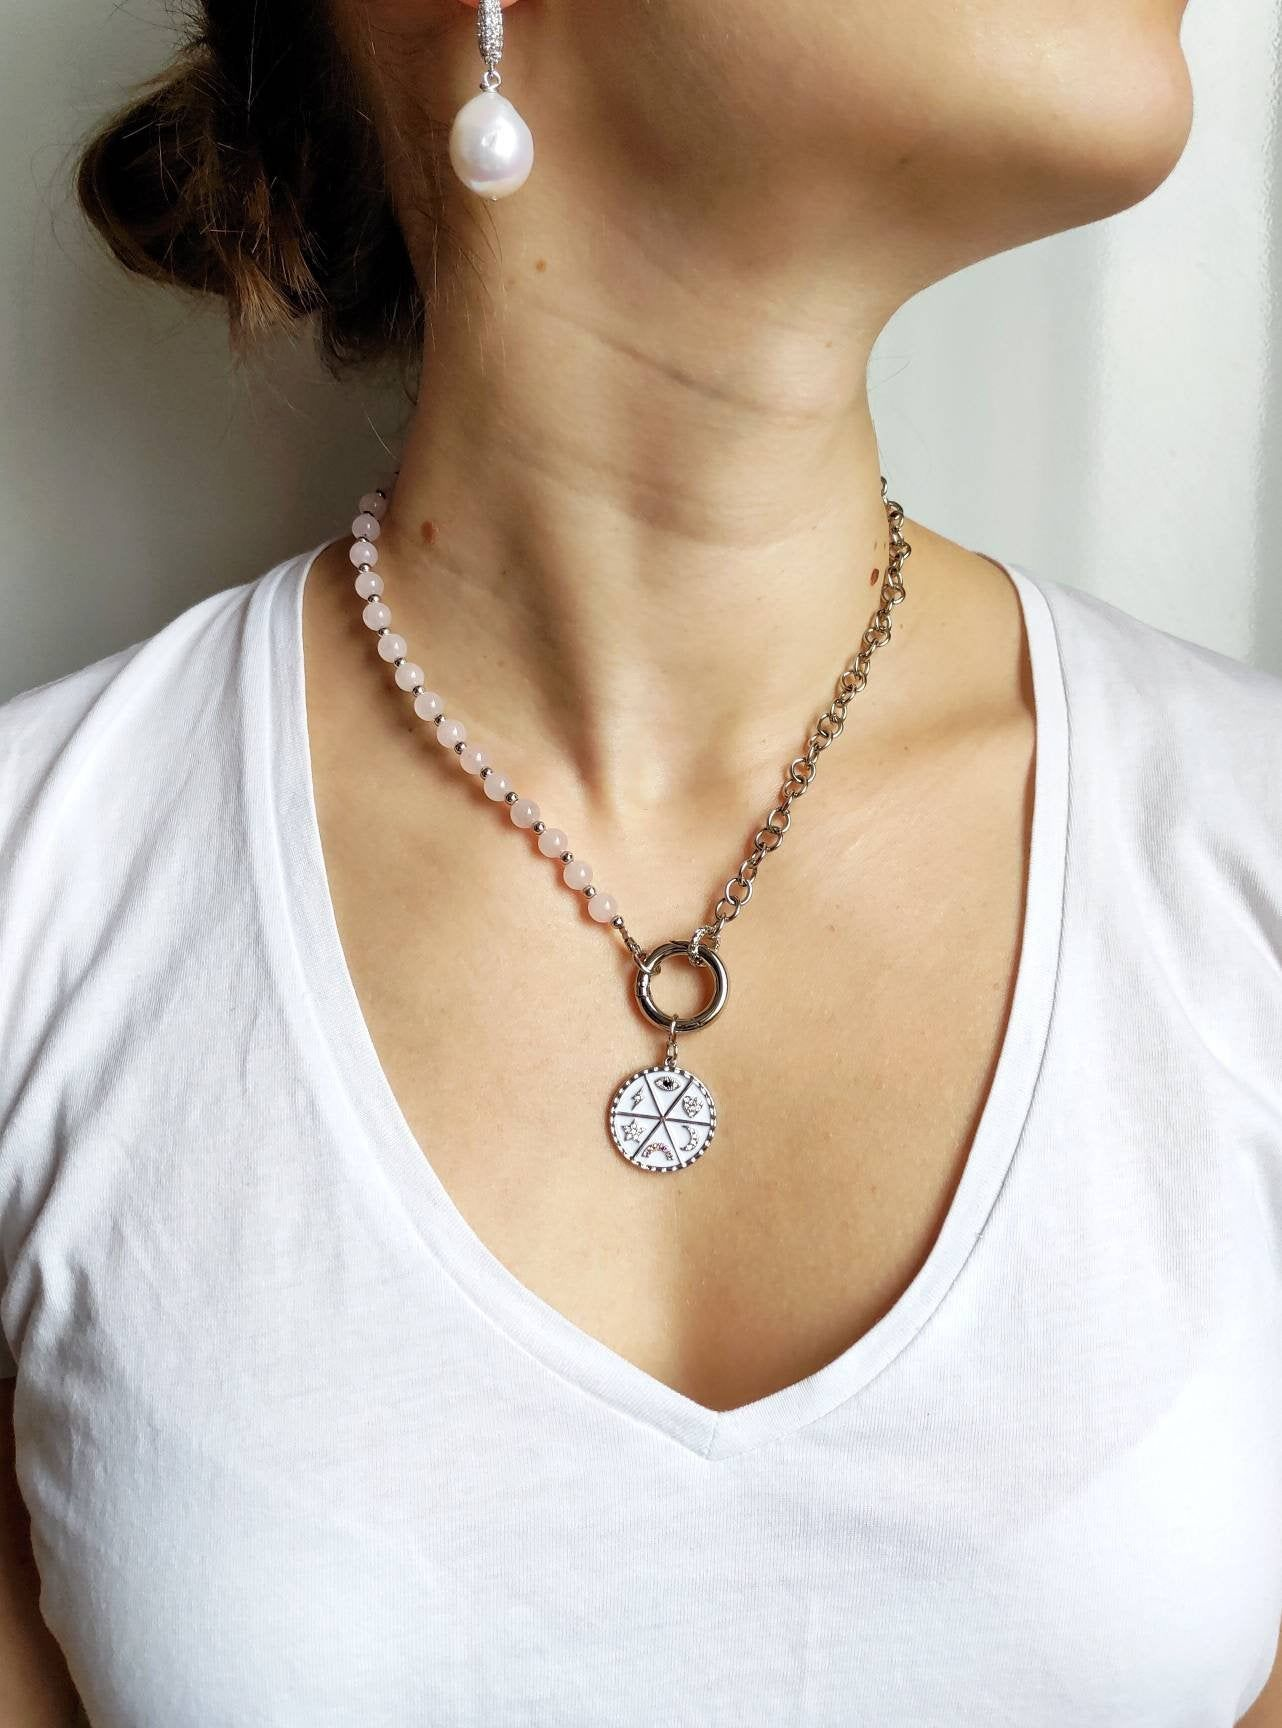 Rose Quartz Necklace Large Baroque Pearl Pendant Choker Statement Jewelry Gift For Her Freshwater Pearl Necklace Pink Beaded Necklace